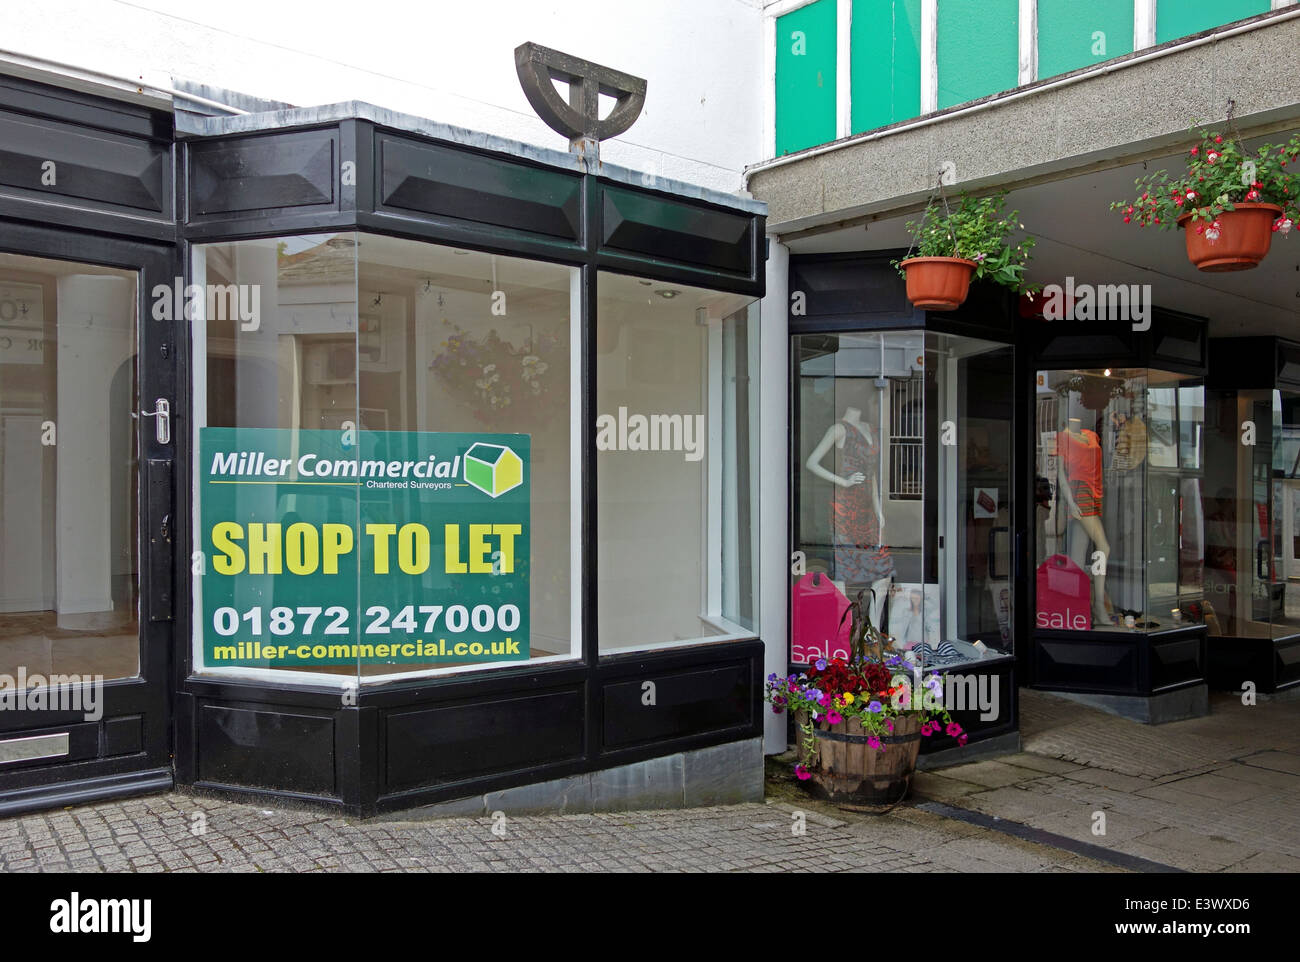 shop to let - Stock Image